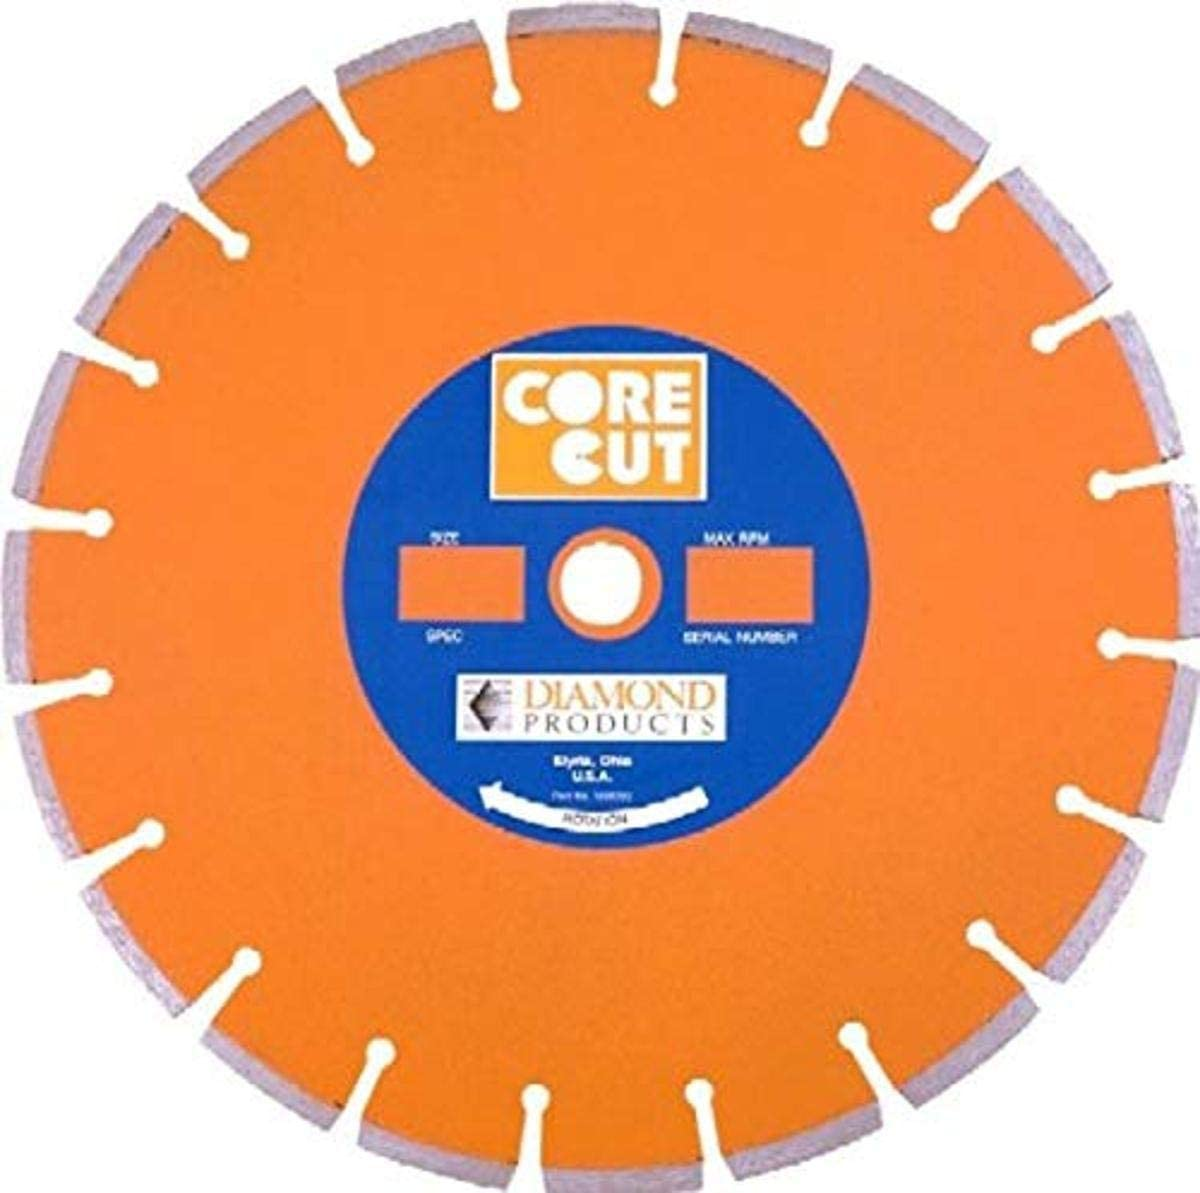 Diamond Products Core Cut 11884 18-Inch by 0.125 by 1-Inch Heavy Duty Orange Dry or Wet Masonry Blade